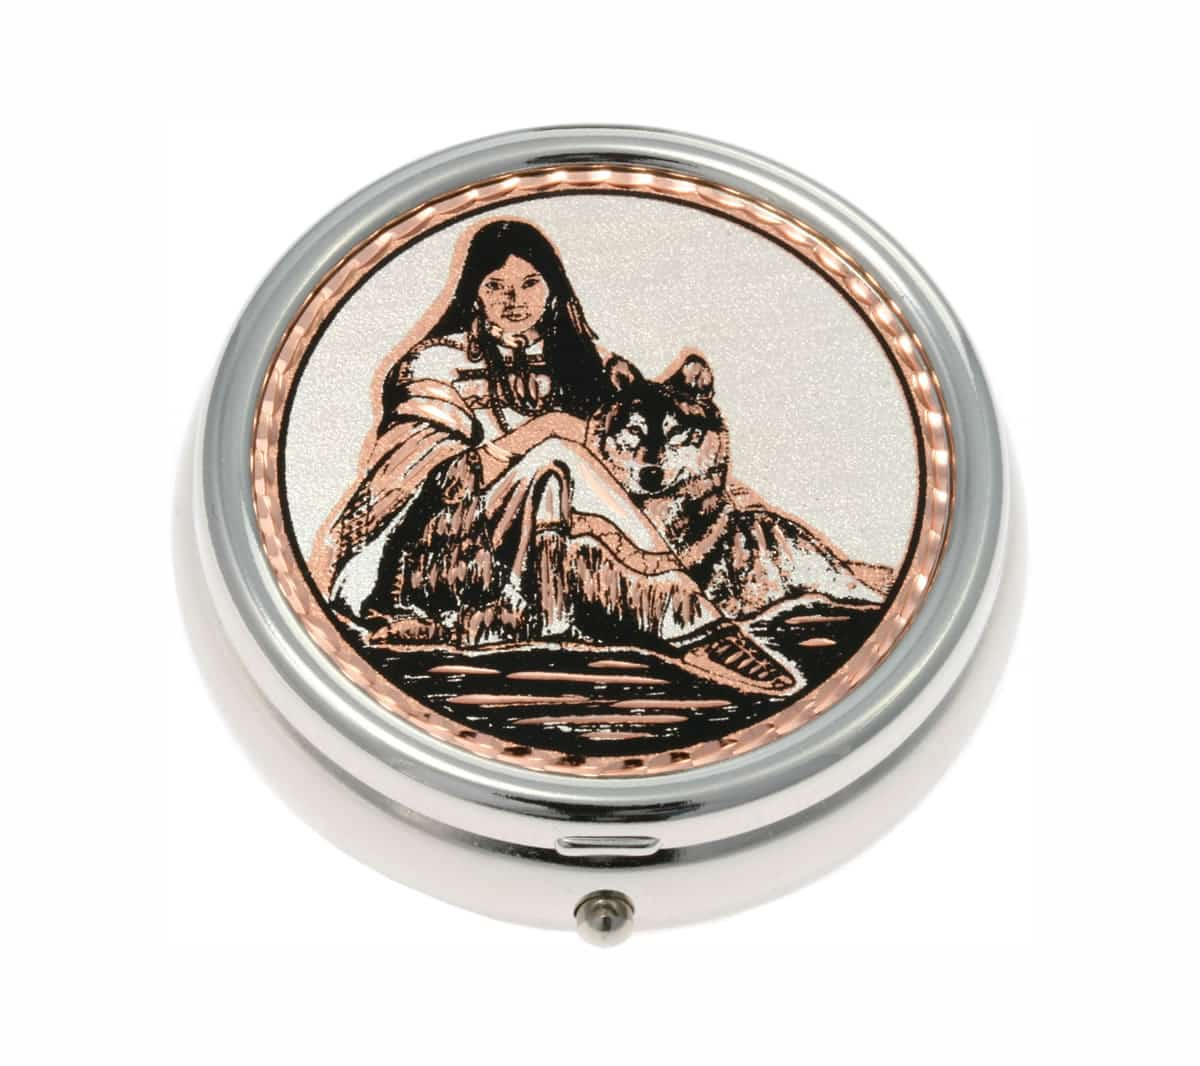 Unique Handmade Gift Ideas for Women, Native American Indian Lady with Wolf Pill Boxes